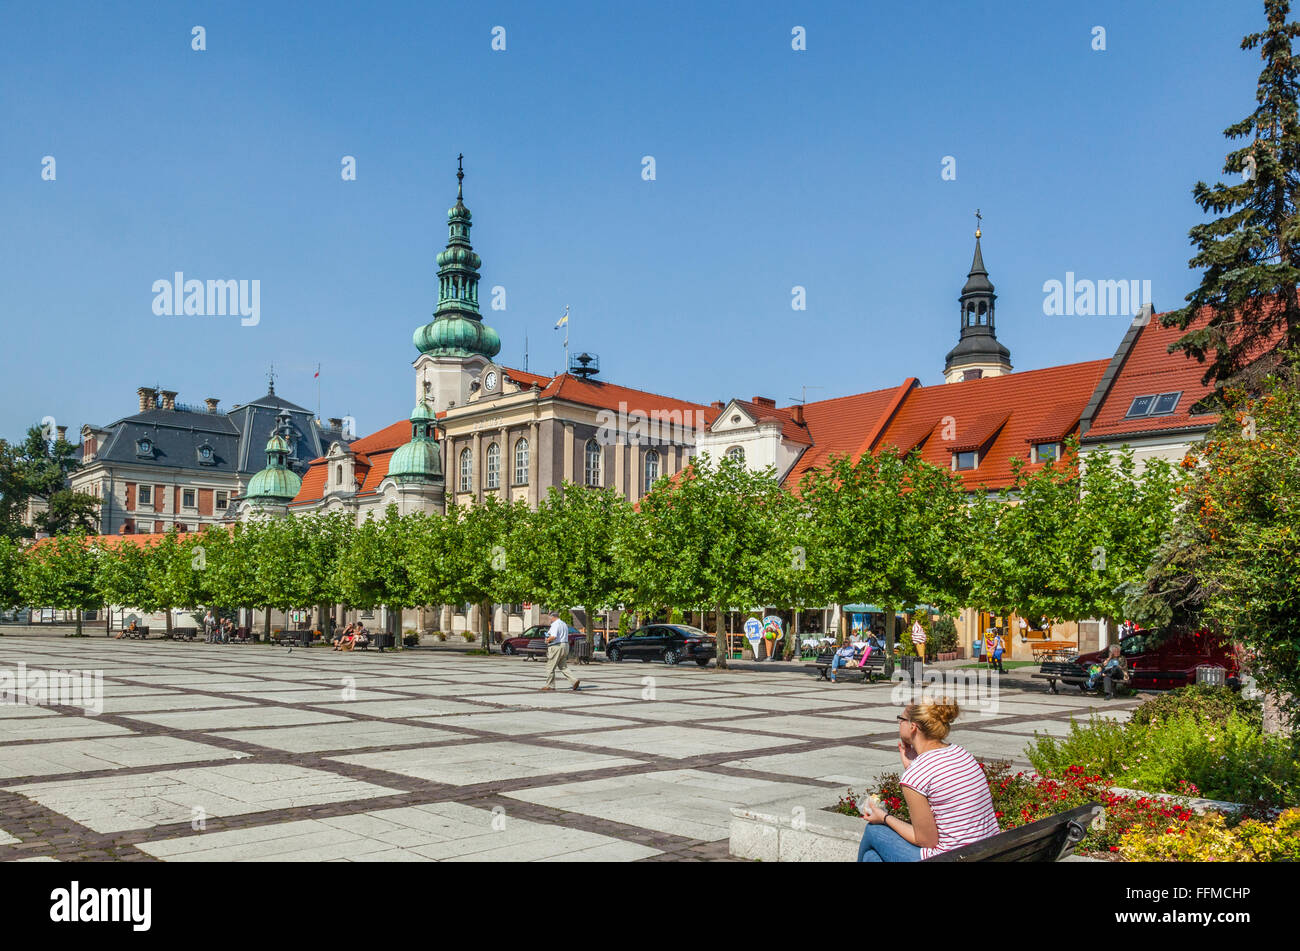 Poland, Silesian Voivodship, Pszczyna (Pless), view of Rynek, the Market Place with Town Hall and Protestant Church - Stock Image